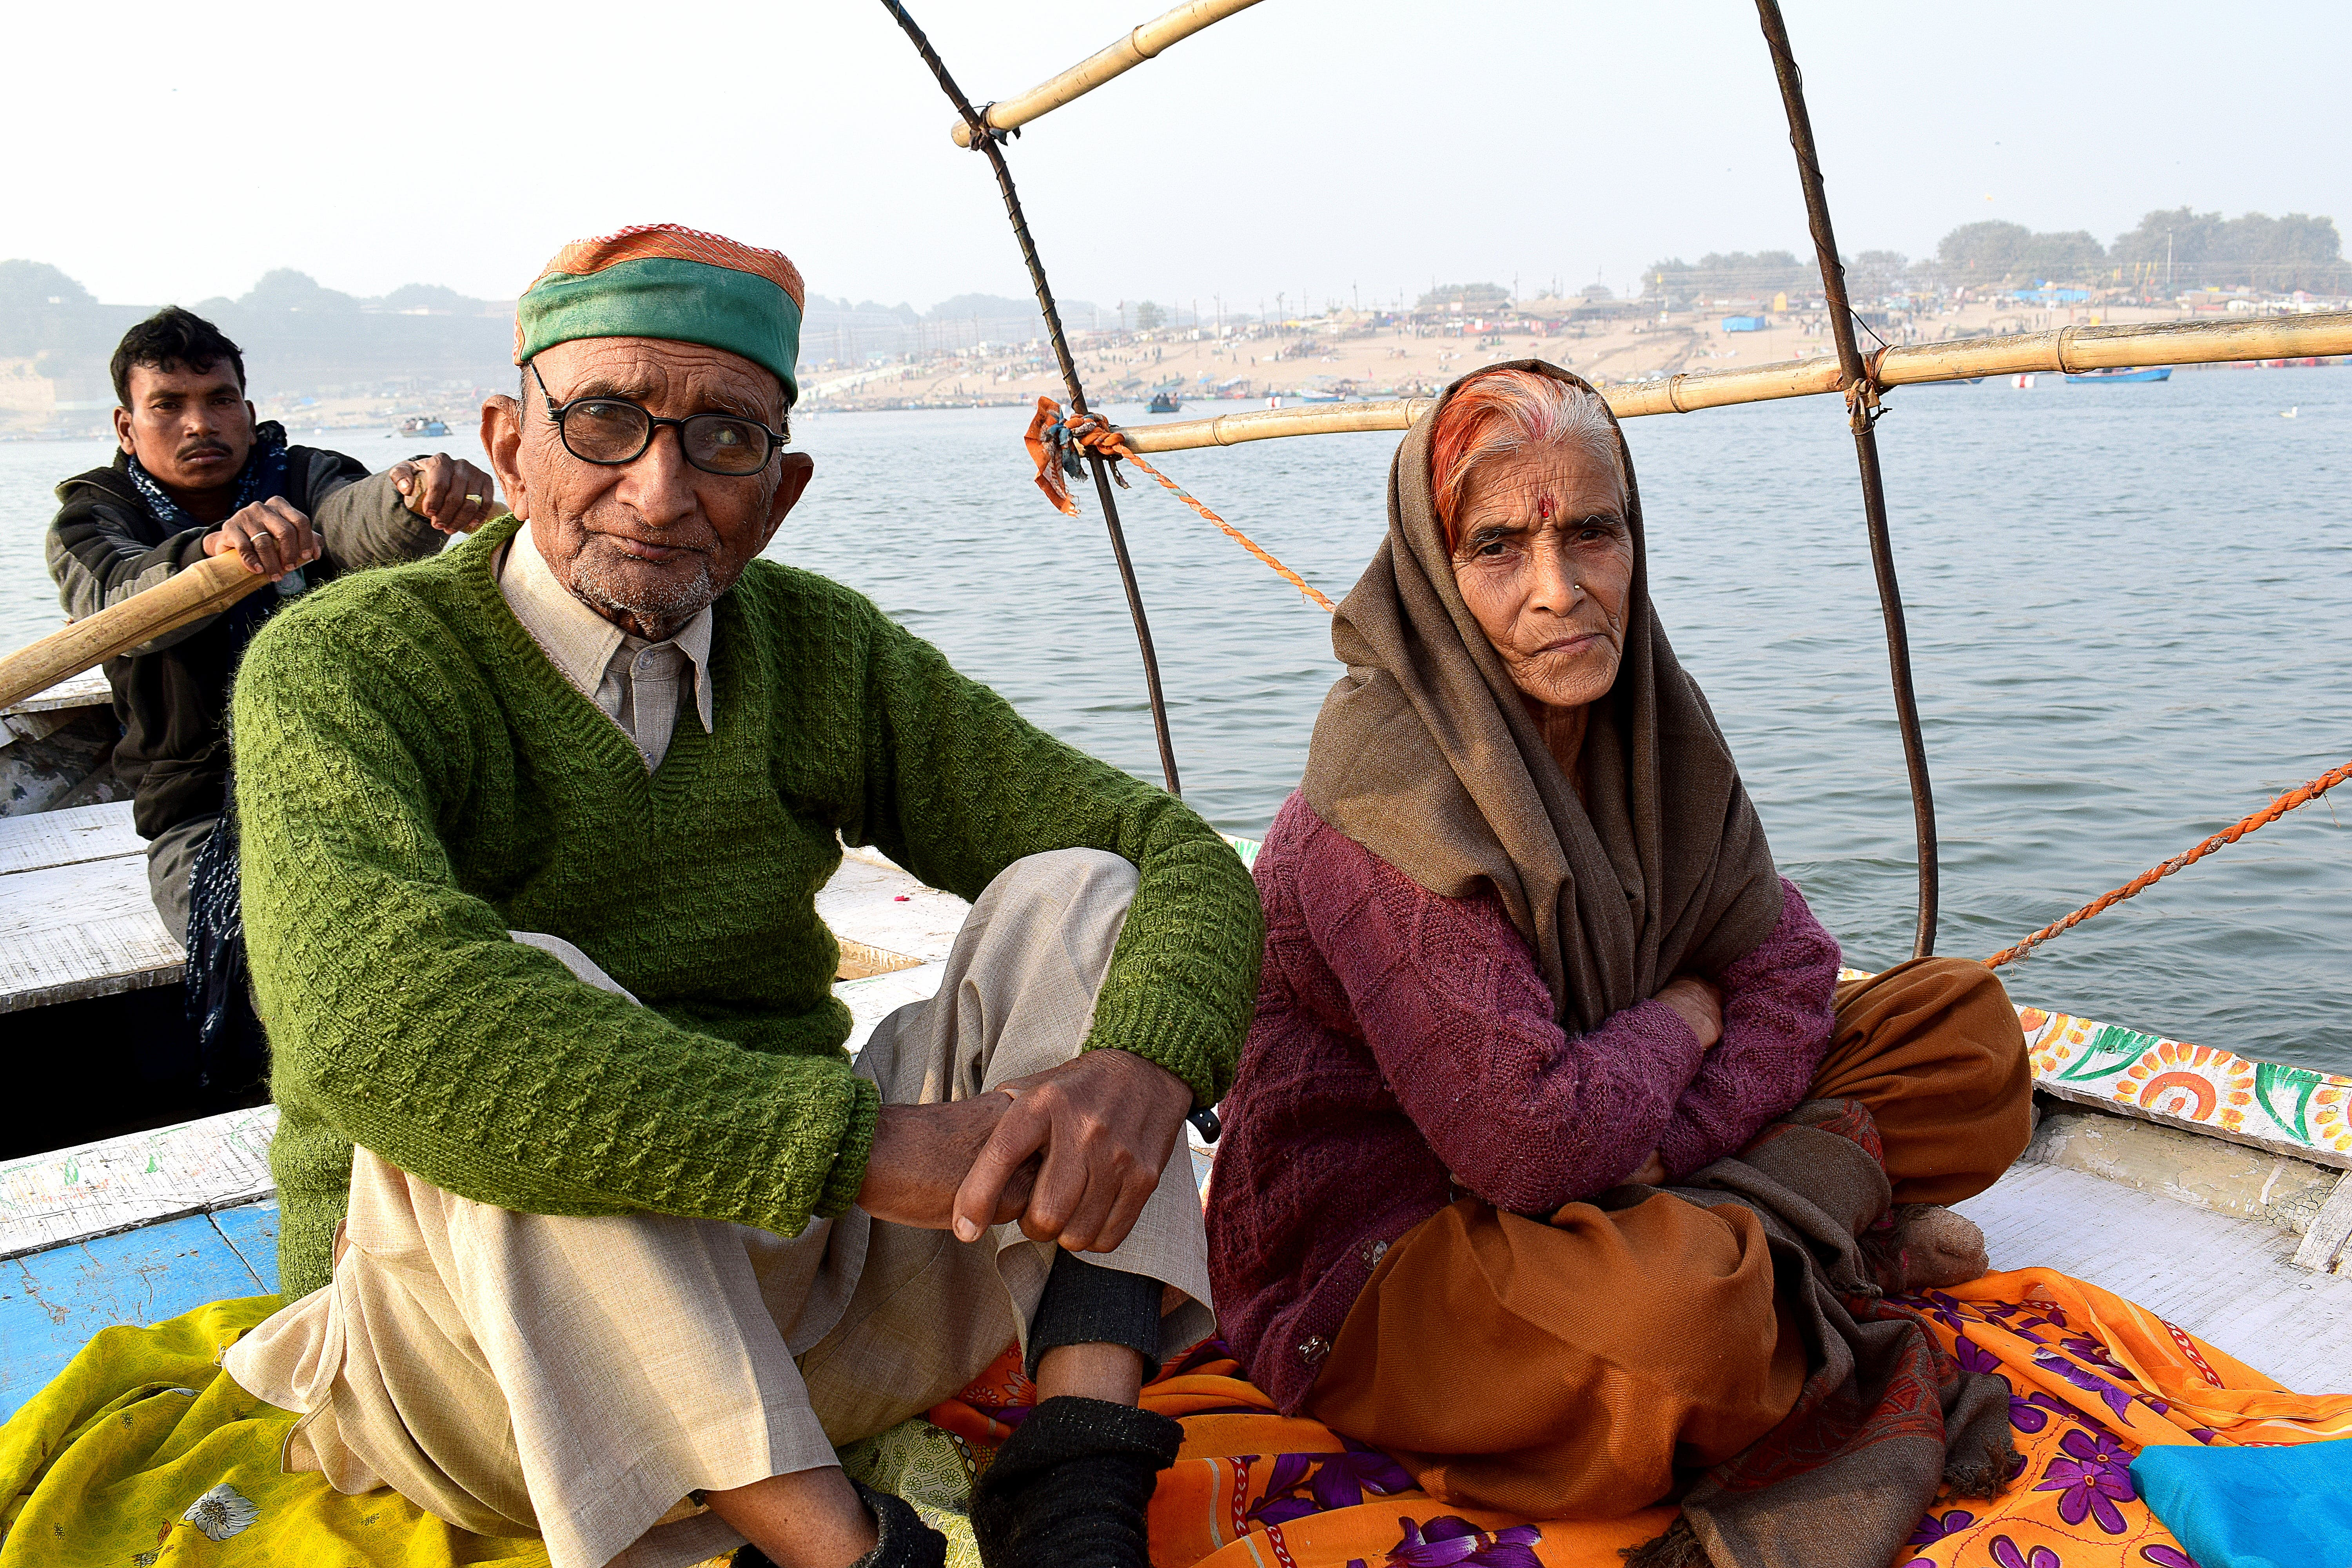 Man and Woman Sitting on Boat Under White Clouds